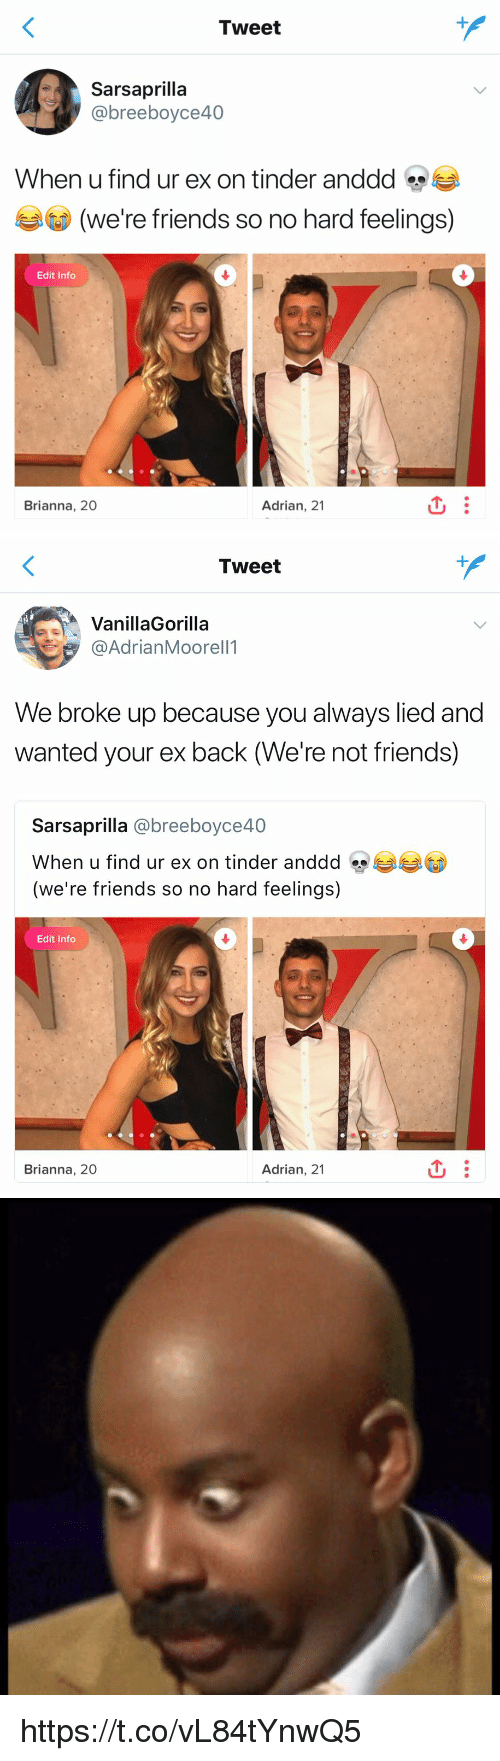 Friends, Funny, and Tinder: Tweet  @breeboyce40  When u find ur ex on tinder anddd s  (D)  (We're friends so no hard feelings)  Edit Info  Brianna, 20  Adrian, 21   Tweet  VanillaGorilla  ヲ@AdrianMoorell1  We broke up becau  wanted your ex back (We're not friends)  se you always lied and  Sarsaprilla @breeboyce40  When u find ur ex on tinder anddd eyeaeaGD  (we're friends so no hard feelings)  Edit Info  Brianna, 20  Adrian, 21 https://t.co/vL84tYnwQ5